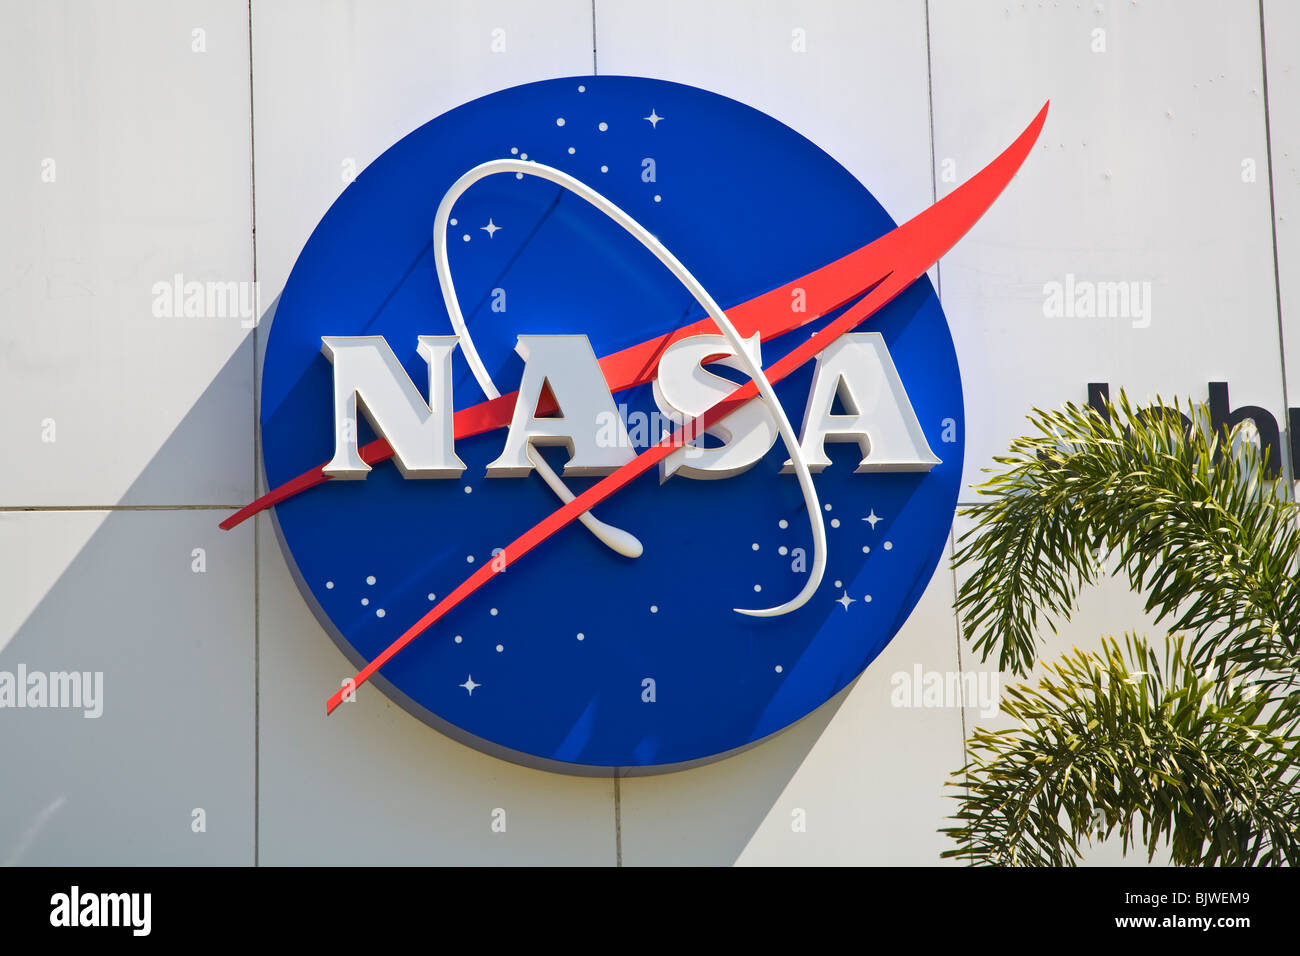 NASA sign at Kennedy Space Center Visitor Complex in Florida - Stock Image